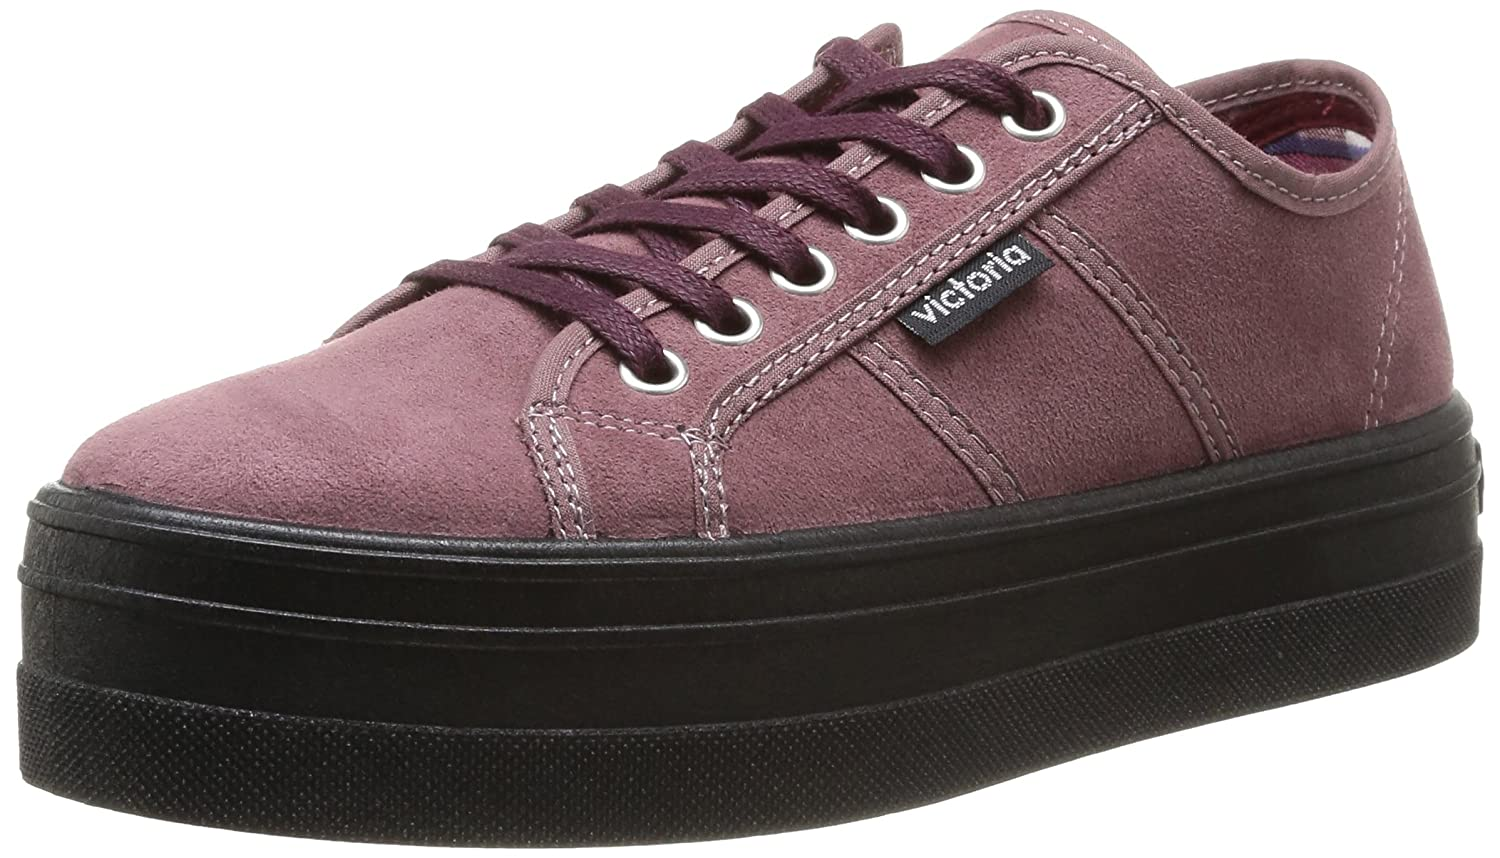 Victoria Blucher mode Antelina Plataforma, Baskets mode Baskets Blucher femme Violet (Prune) ec206a0 - robotanarchy.space